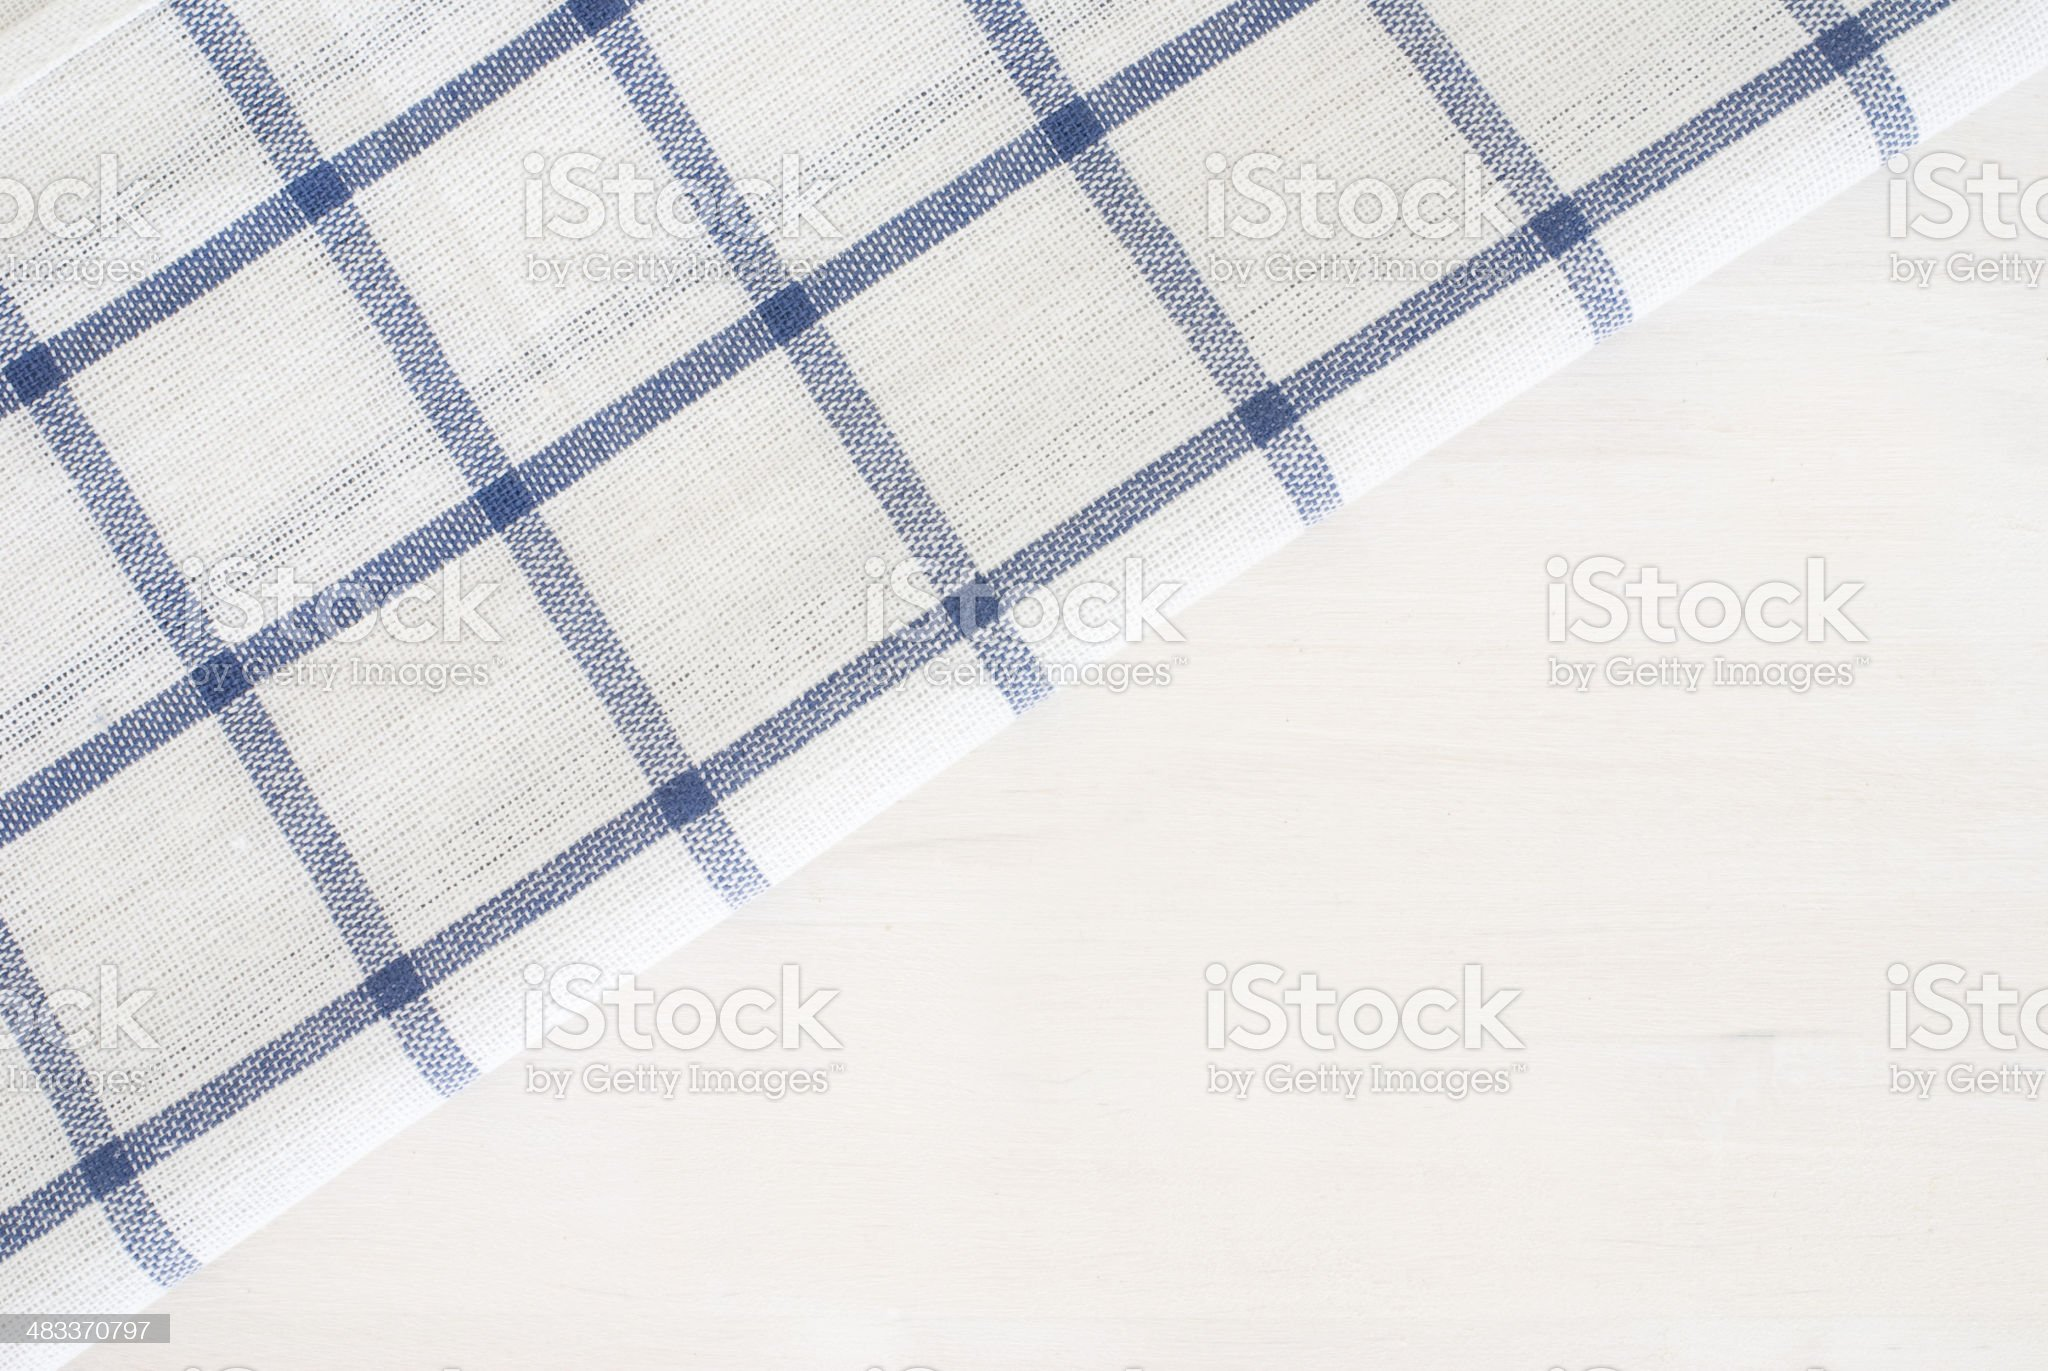 Kitchen Towel and bright background royalty-free stock photo